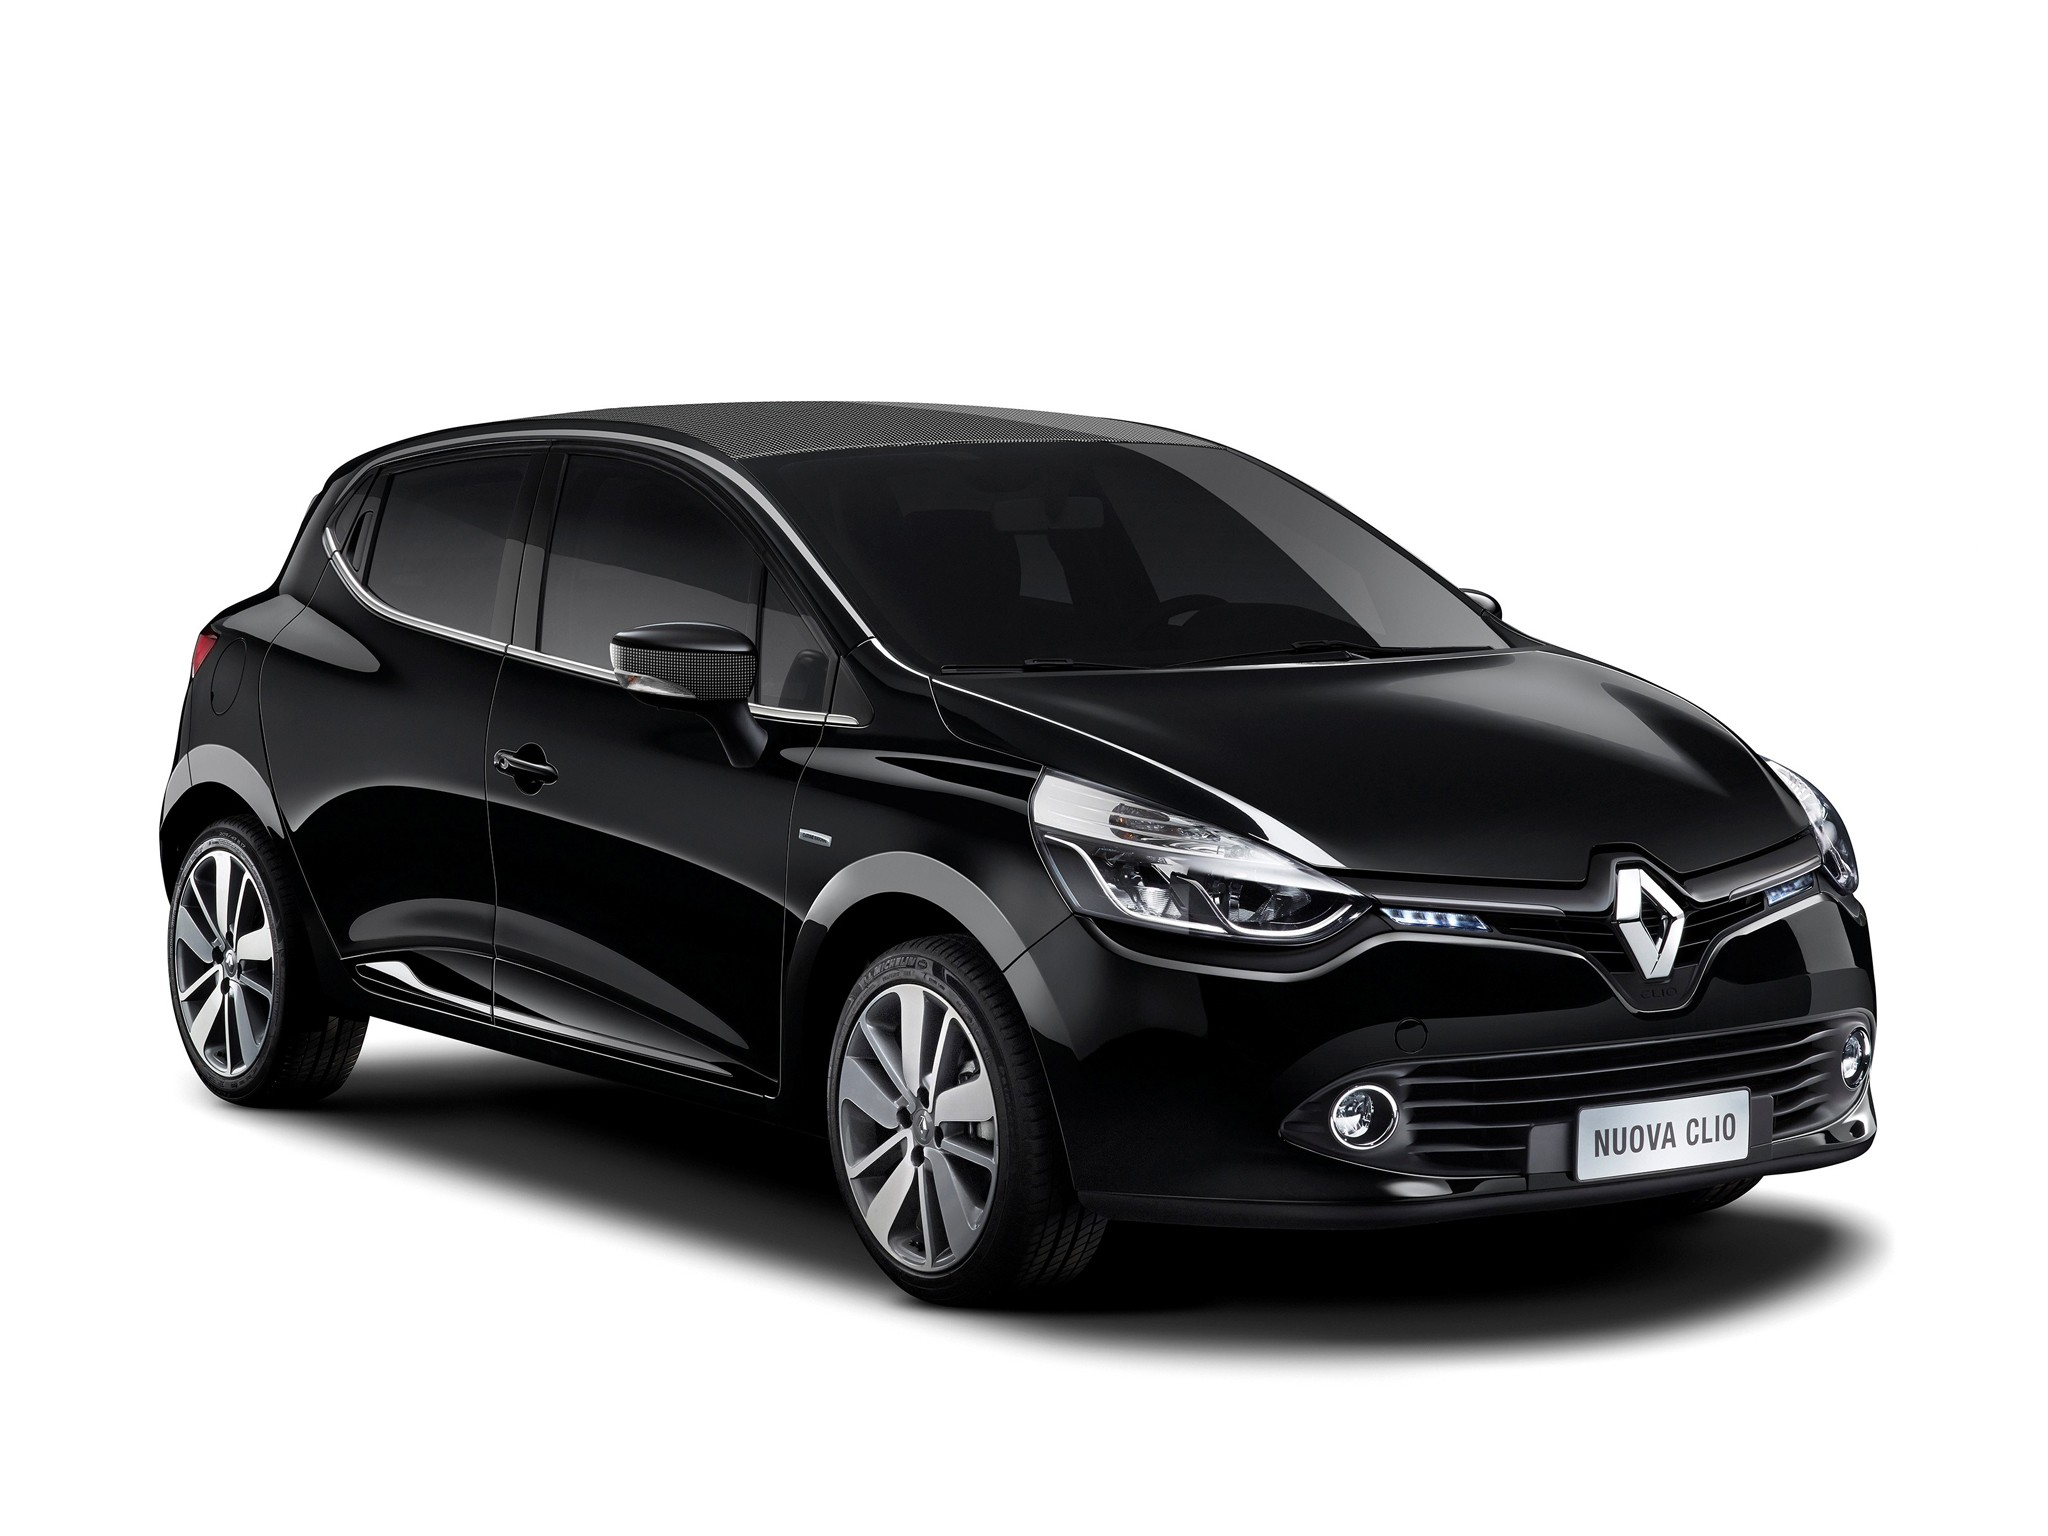 renault clio 5 doors 2012 2013 2014 2015 2016. Black Bedroom Furniture Sets. Home Design Ideas